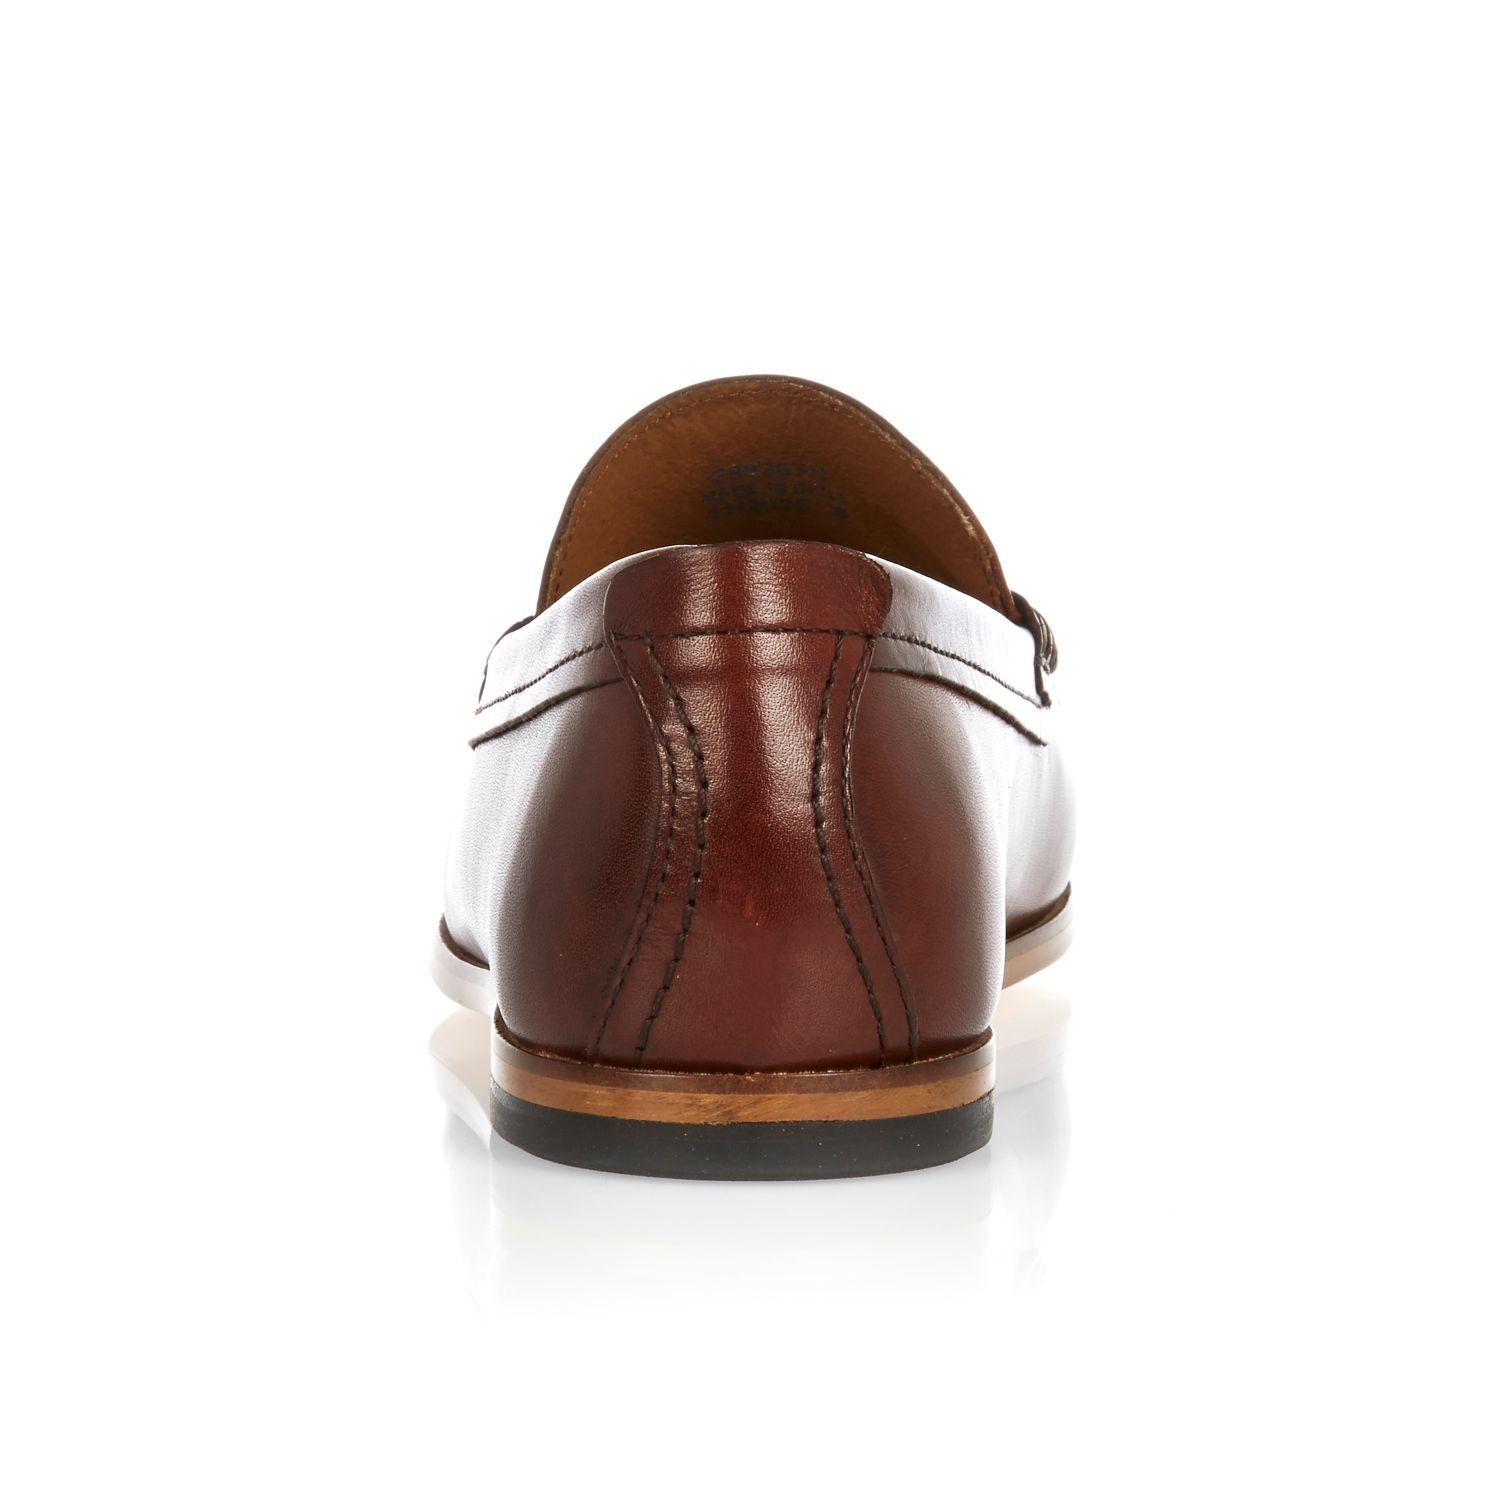 9d73cf913db Lyst - River Island Dark Brown Leather Tassel Loafers in Brown for Men